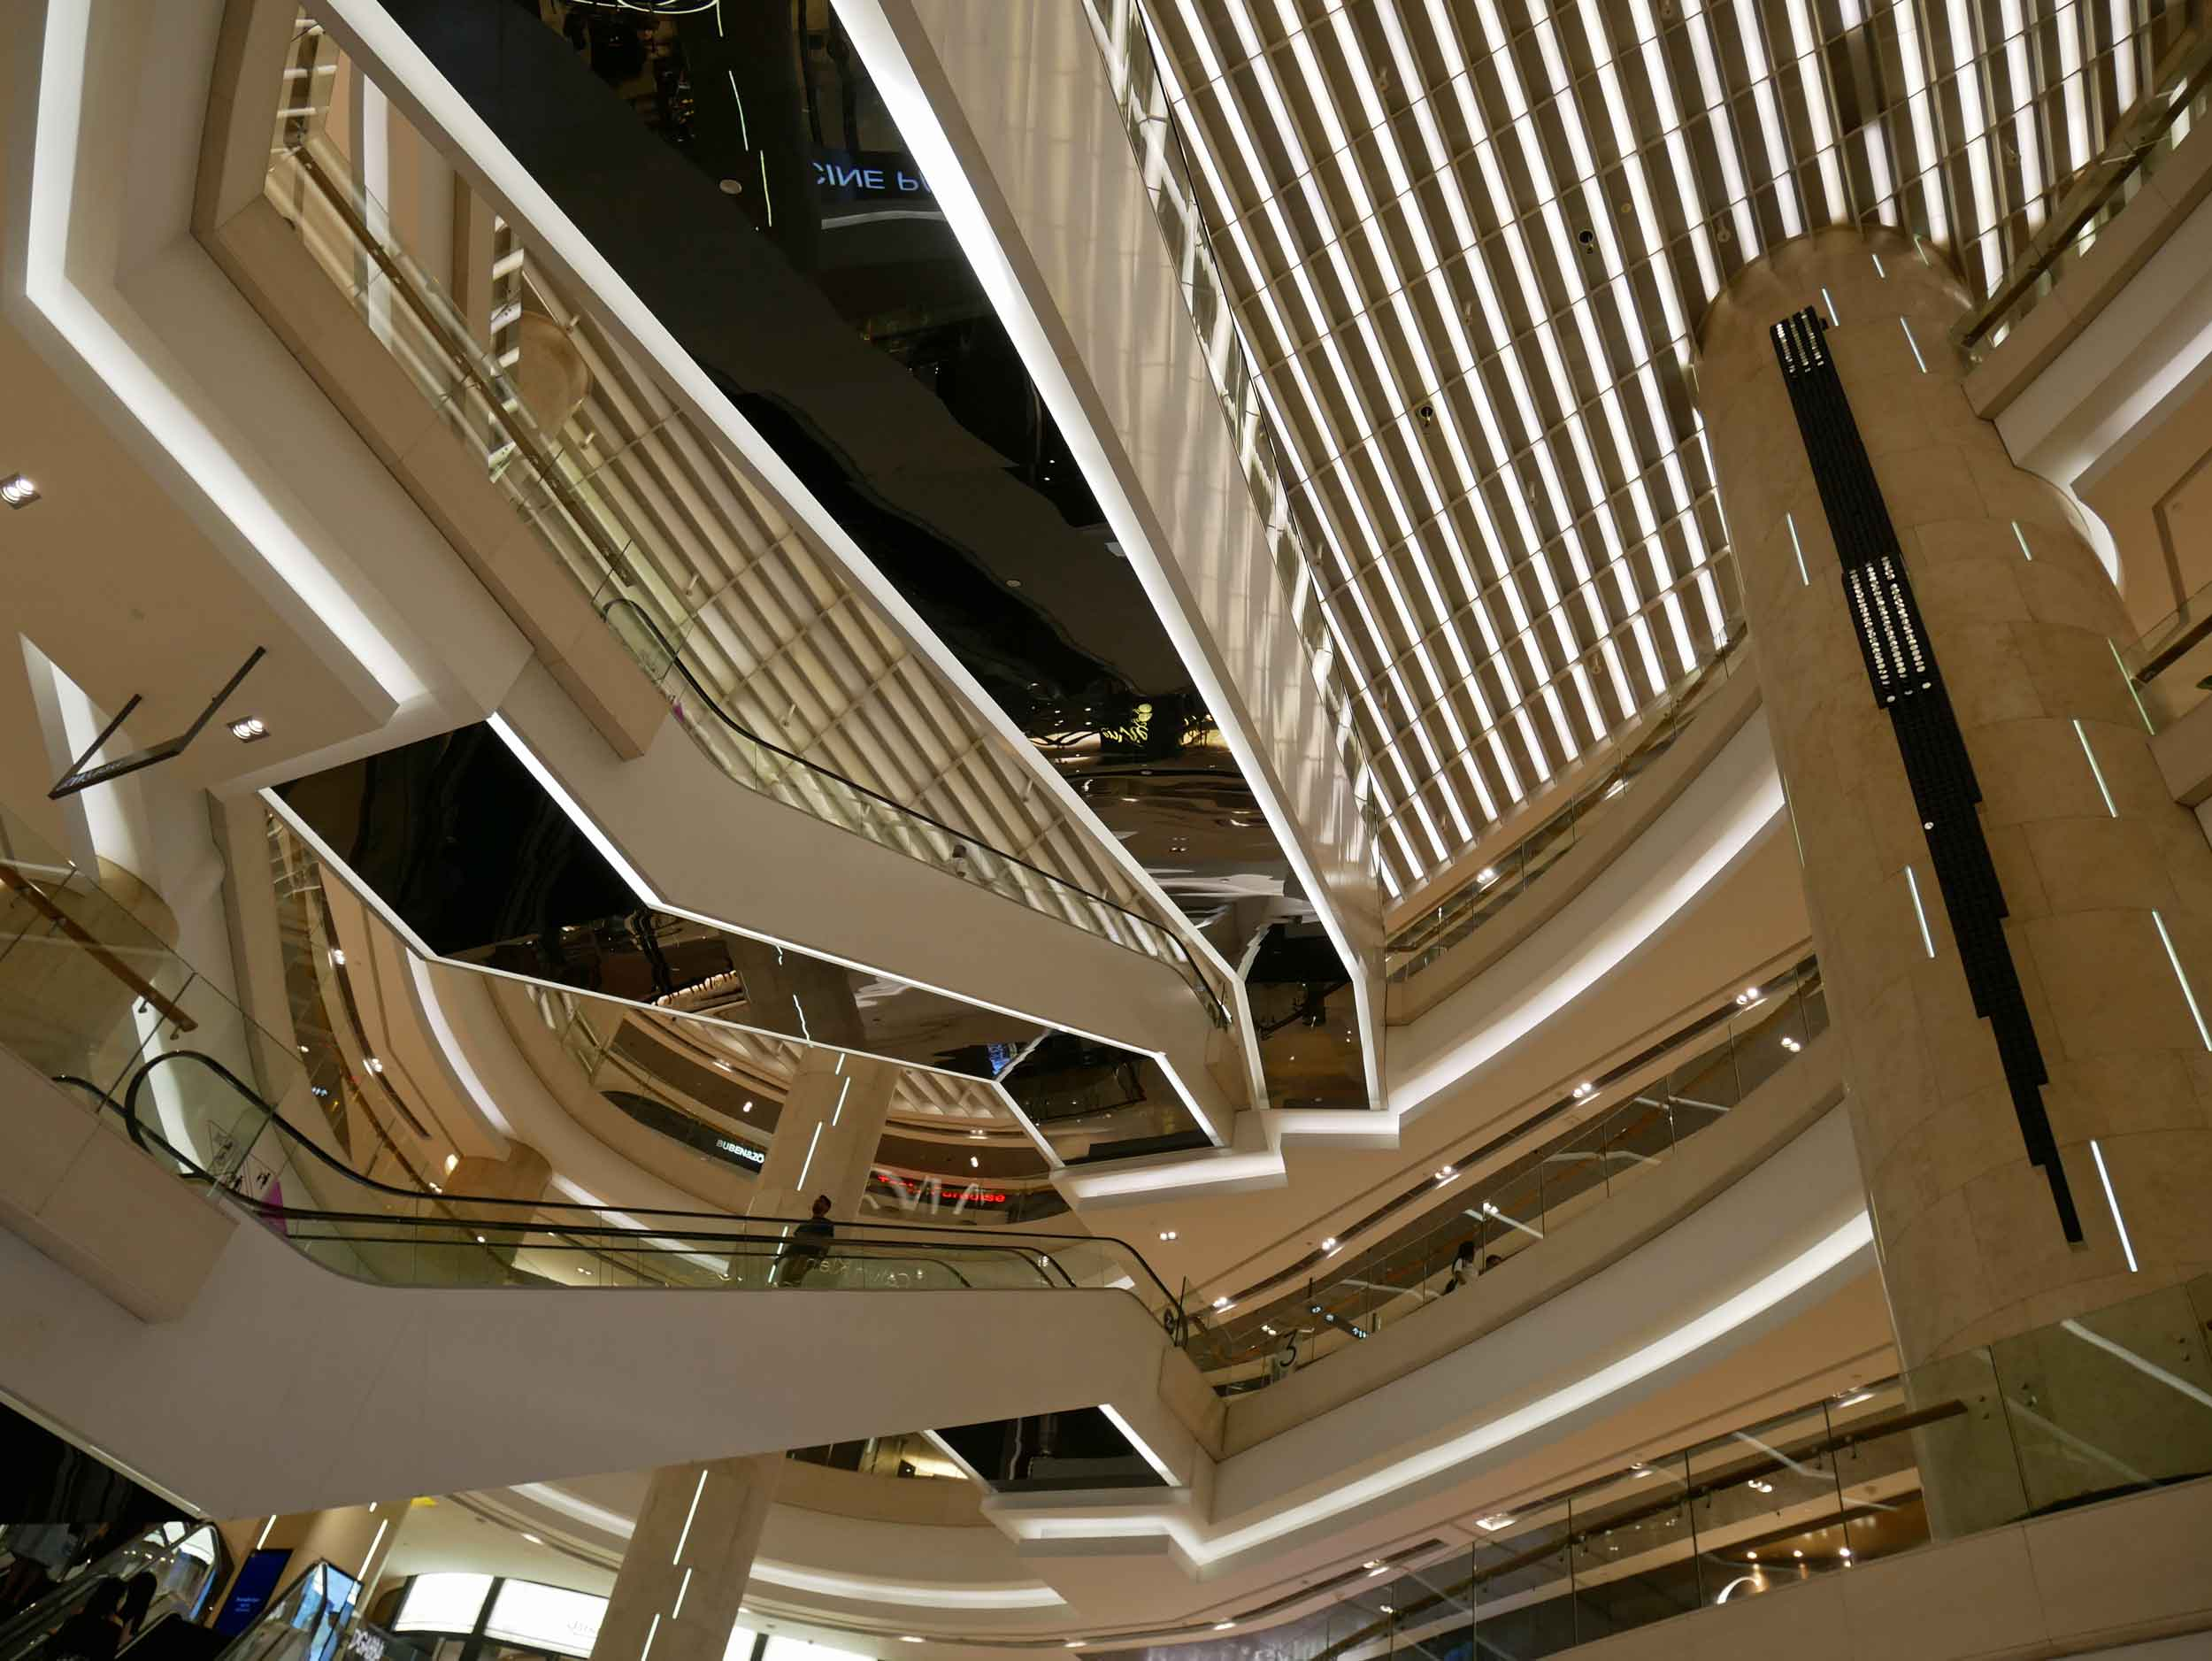 Don't look up! The dizzying inside of ION Orchard.